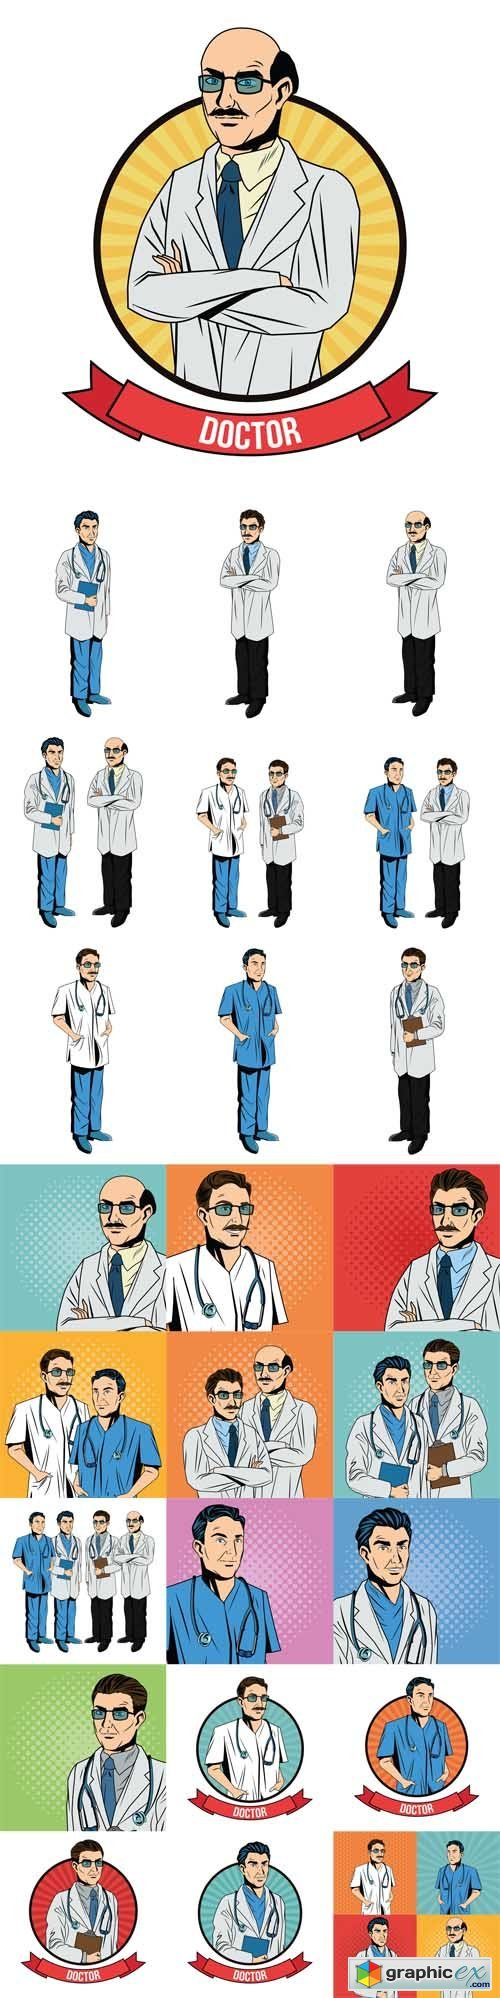 Doctor cartoon with uniform. Medical care pop art comic and retro theme